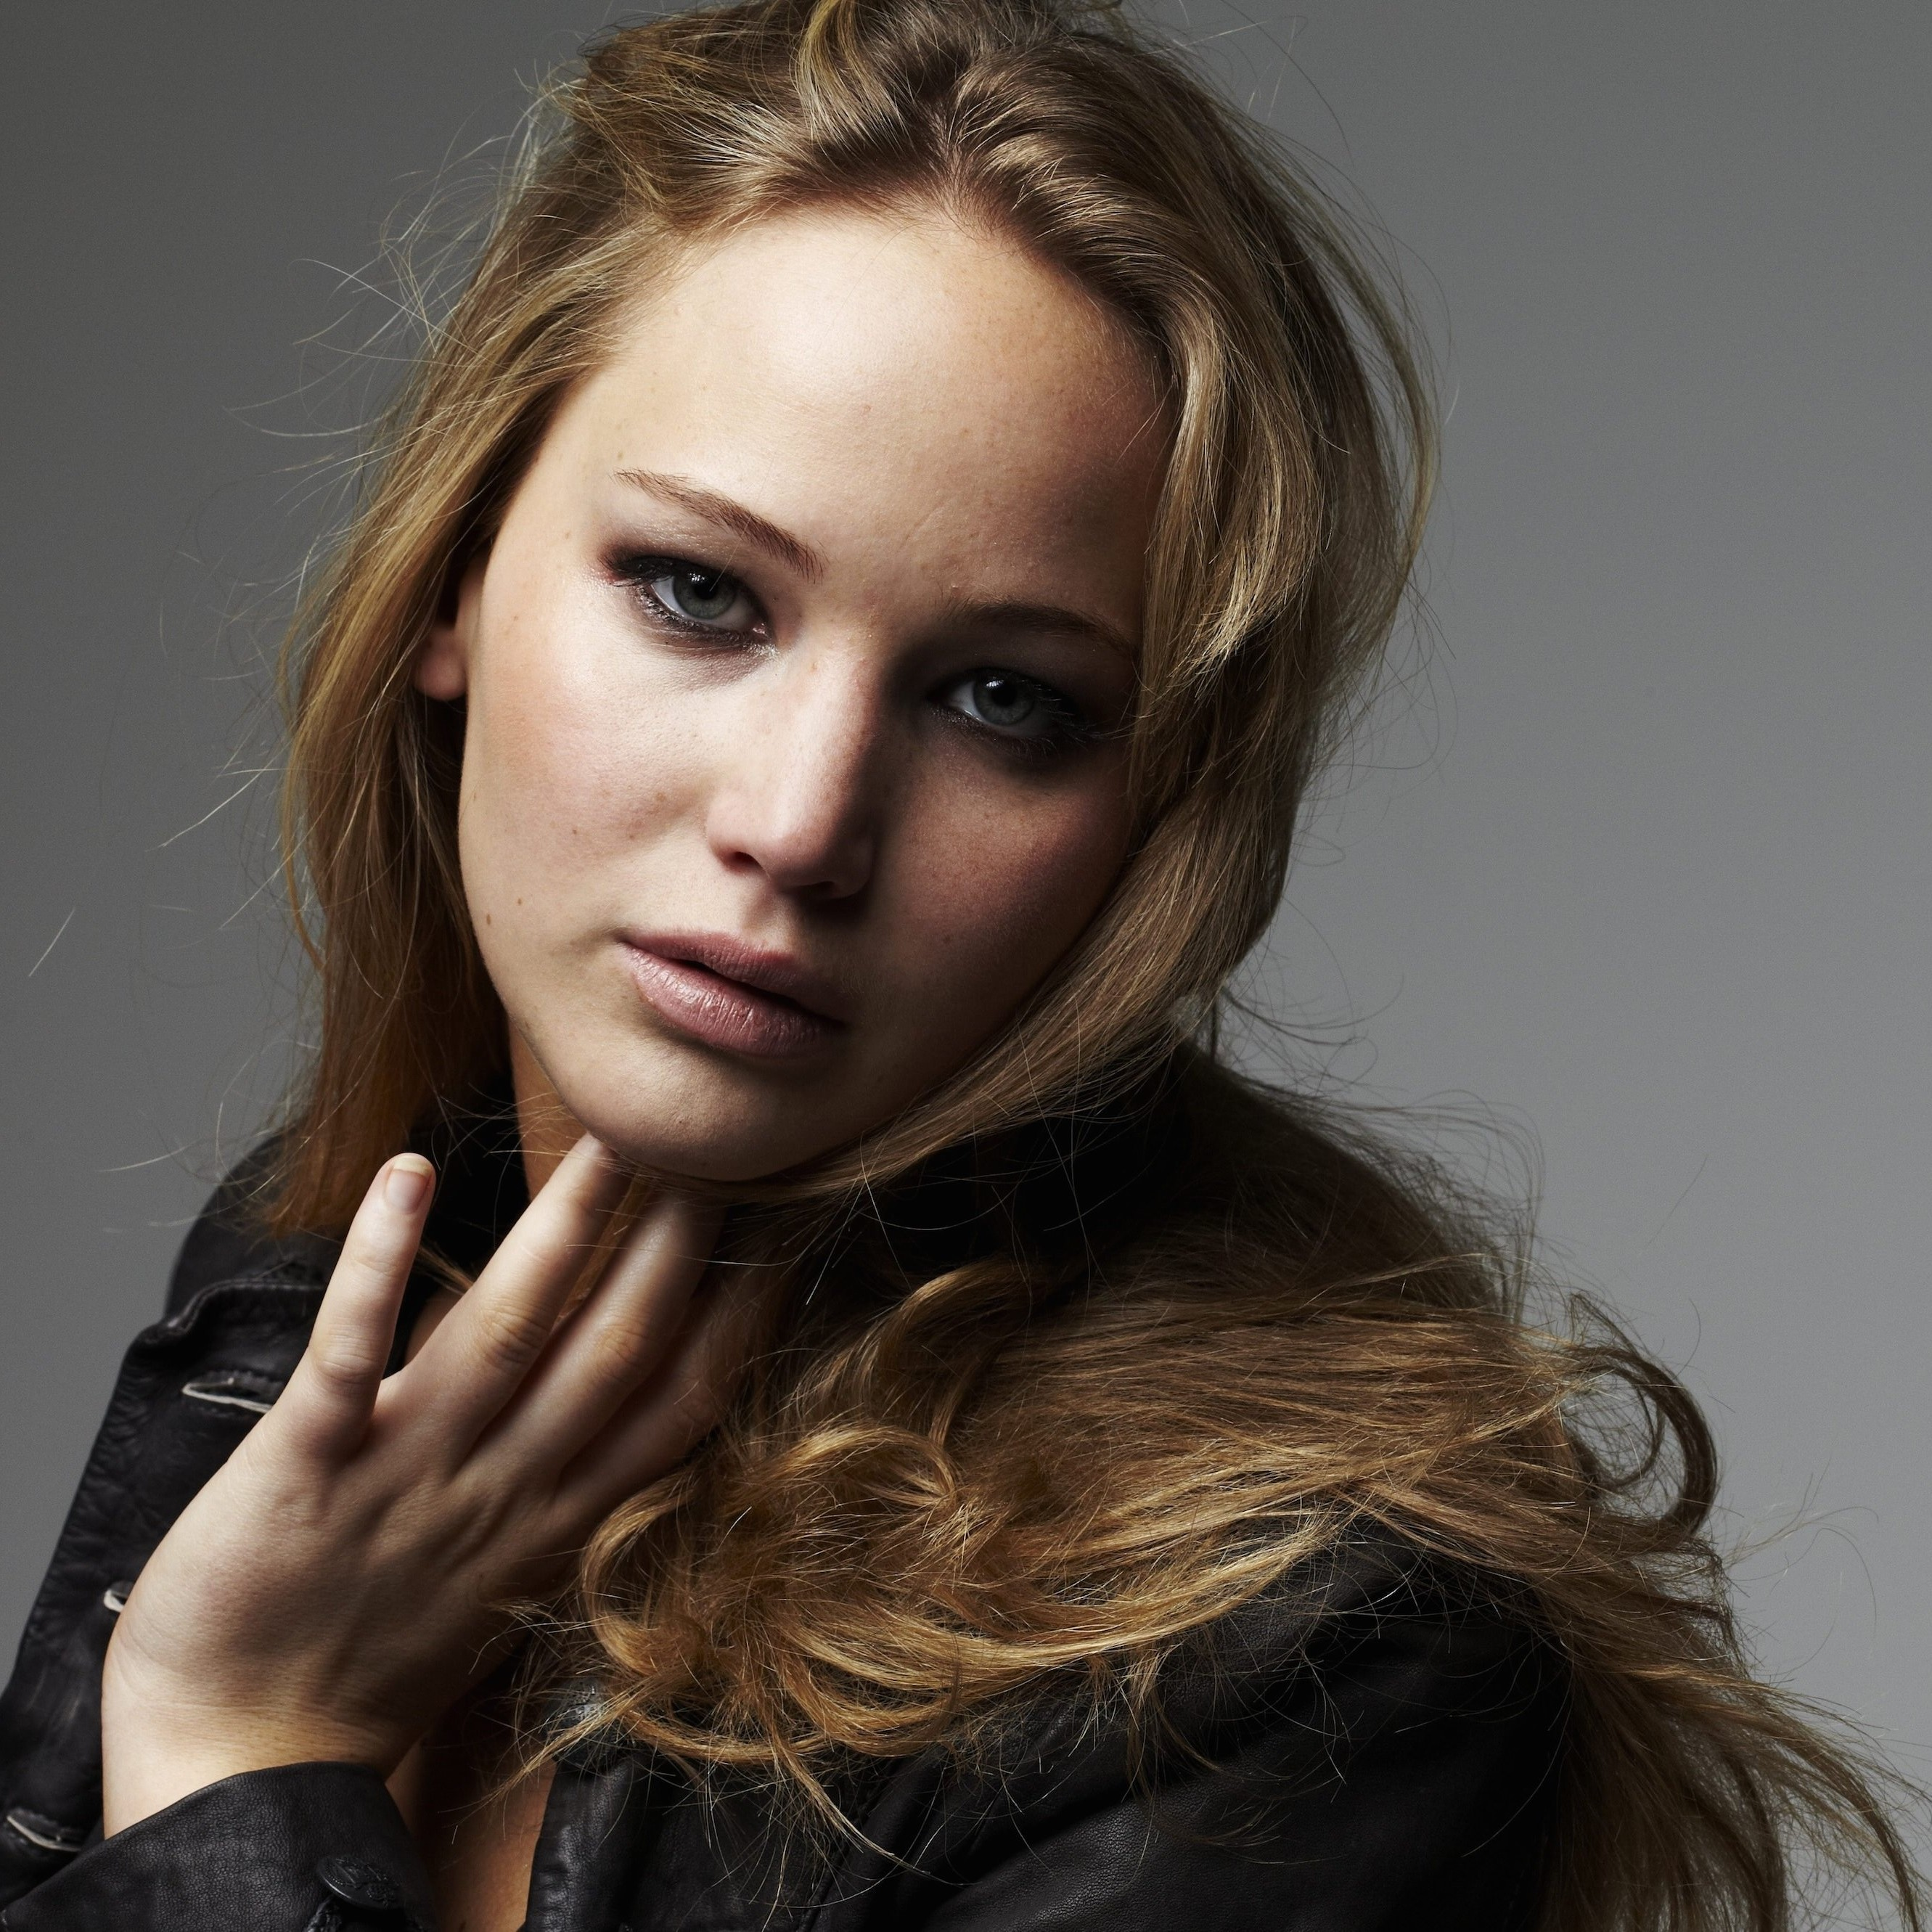 Jennifer Lawrence Portrait Wallpaper for Apple iPhone 6 Plus